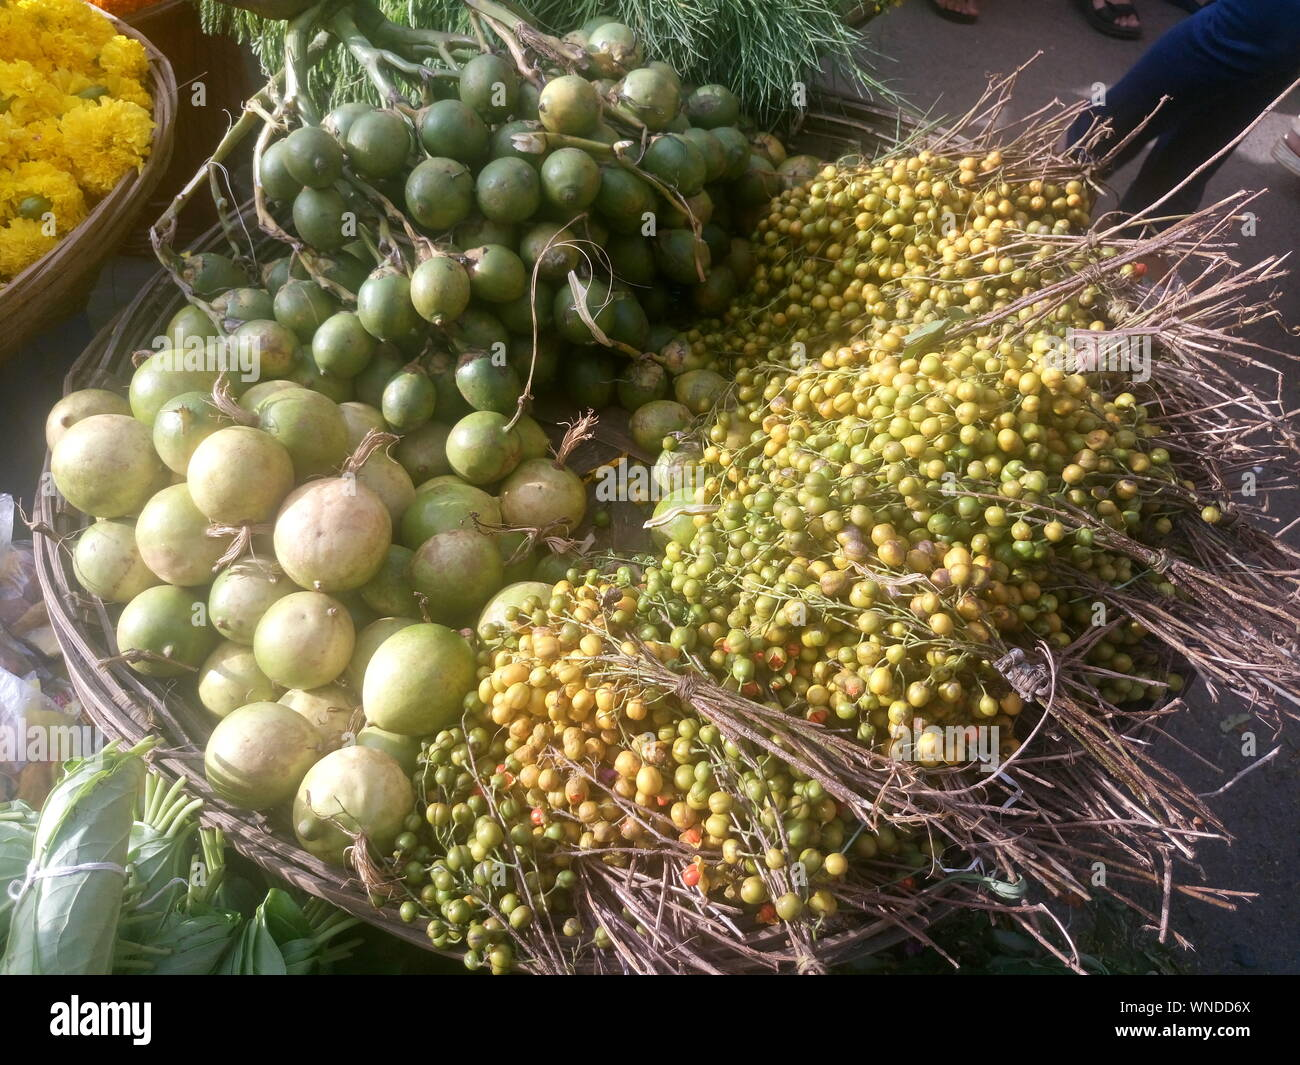 High Angle View Of Various Fruits And Vegetables For Sale At Market Stock Photo